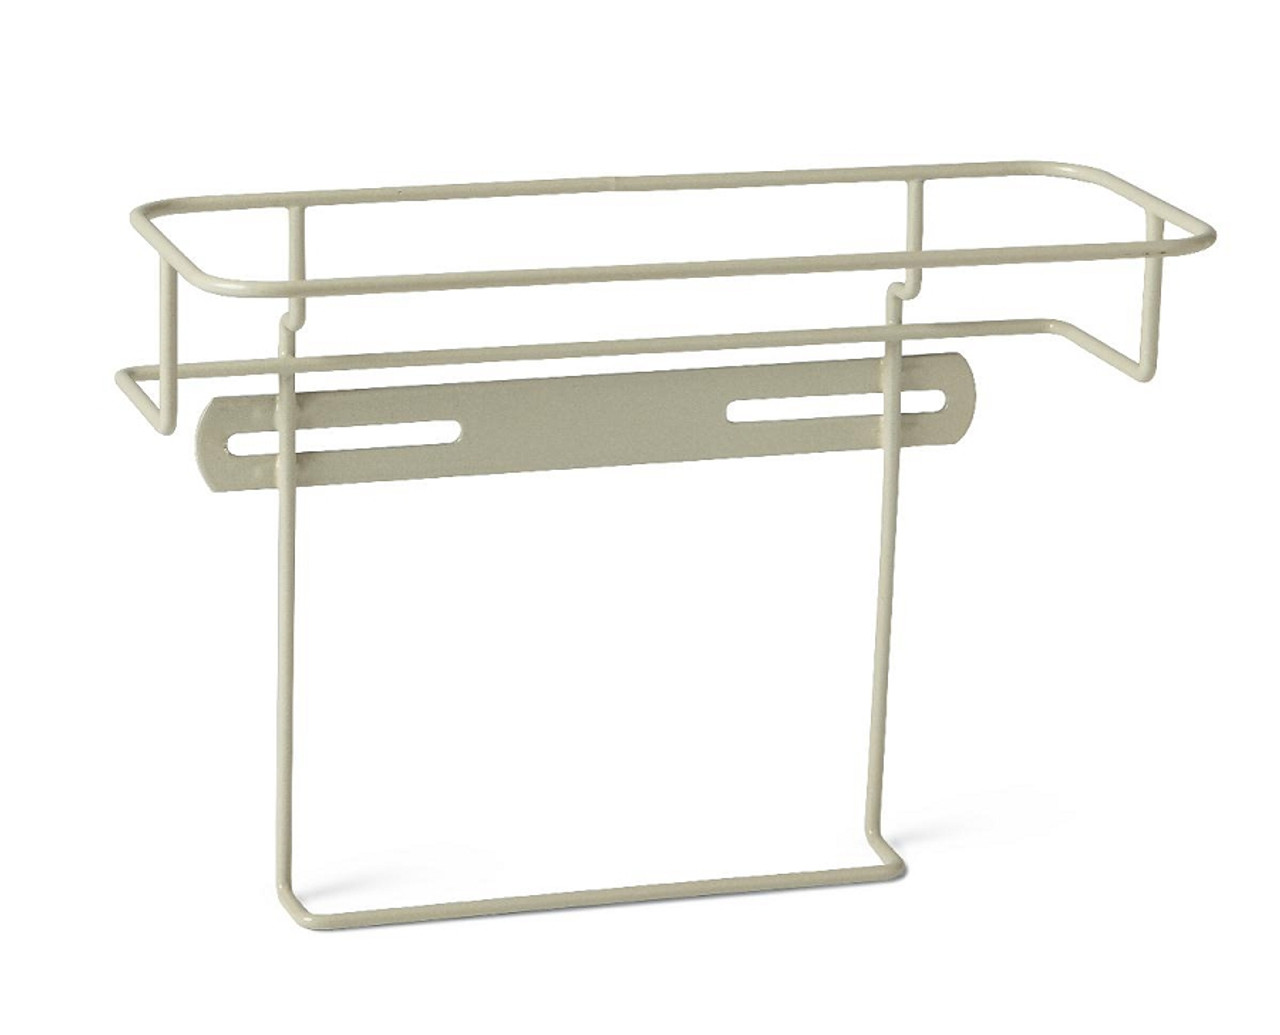 Bracket, Non-Locking for 2 Quart and 5 Quart Sharps Container by Kendall